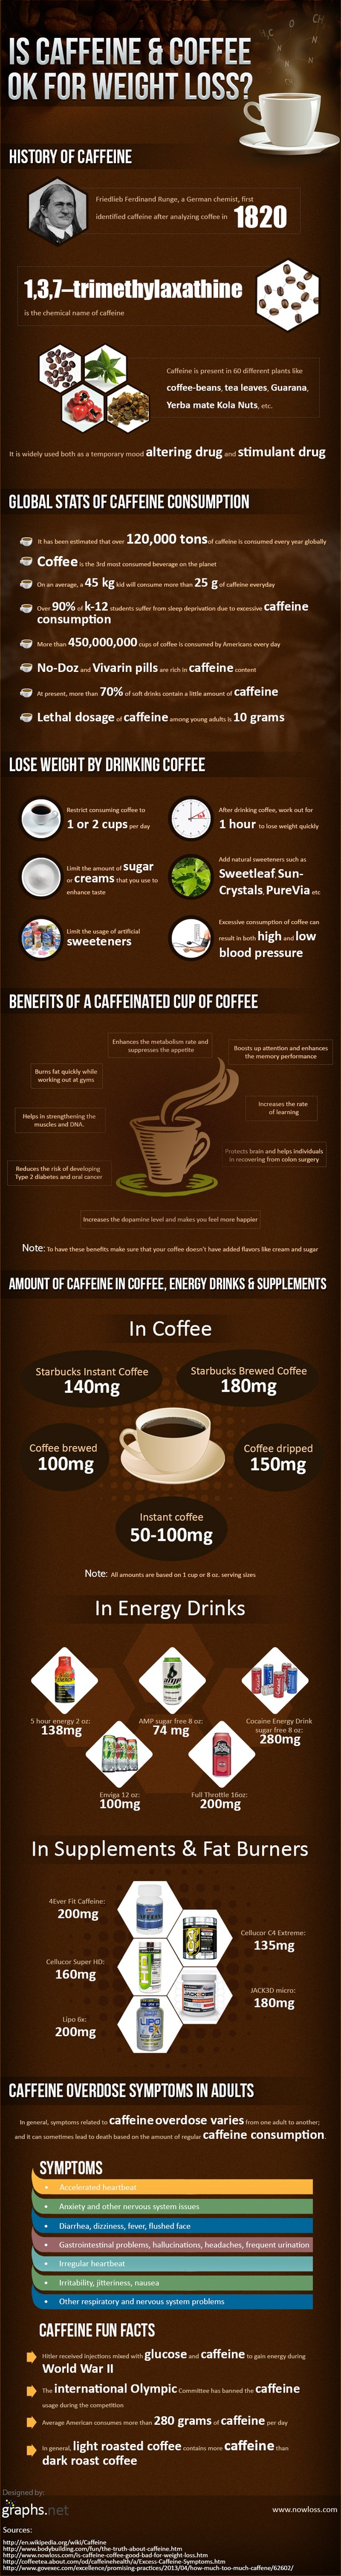 Is caffeine and coffee OK for weight loss